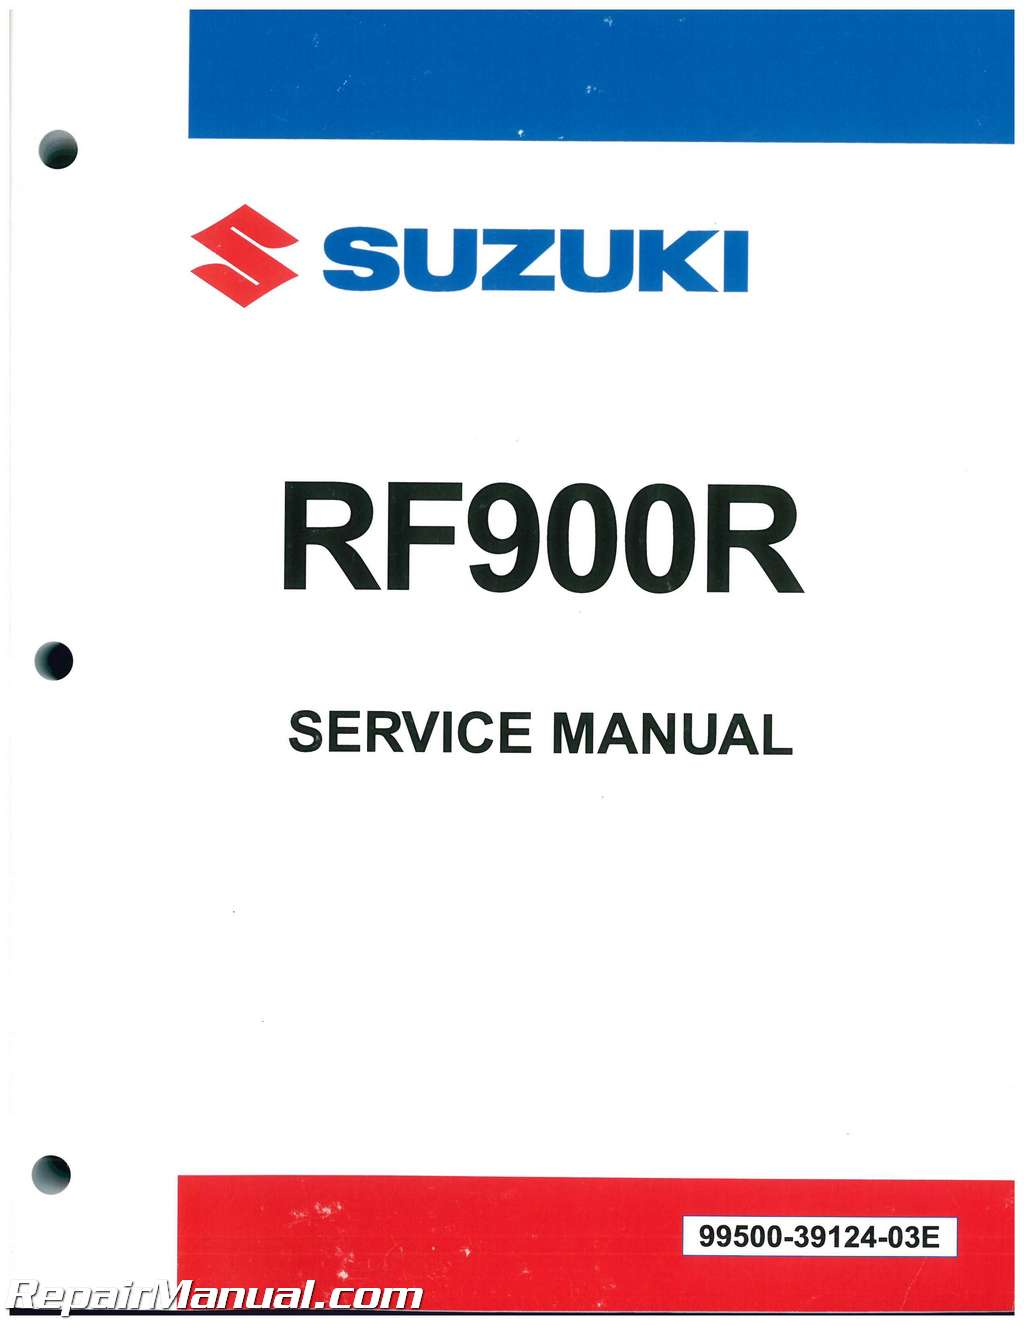 Dr250 Wiring Diagram Suzuki Rv50 Motorcycle Service Manual Auto Electrical 1994